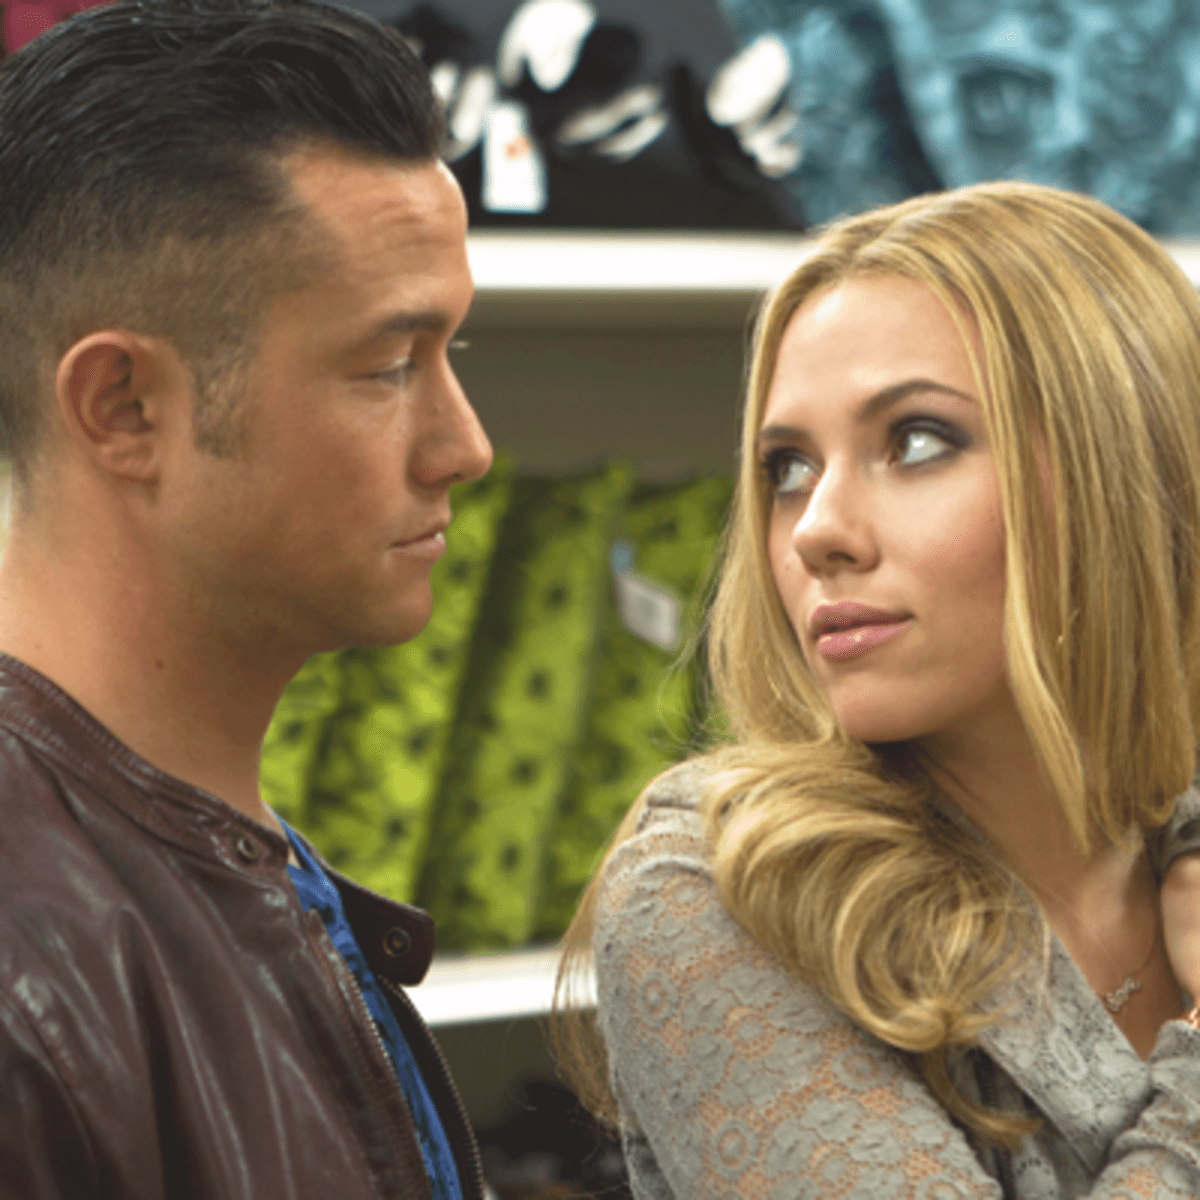 Porn In Don Jon a tangled web: don jon highlights real-life effects of